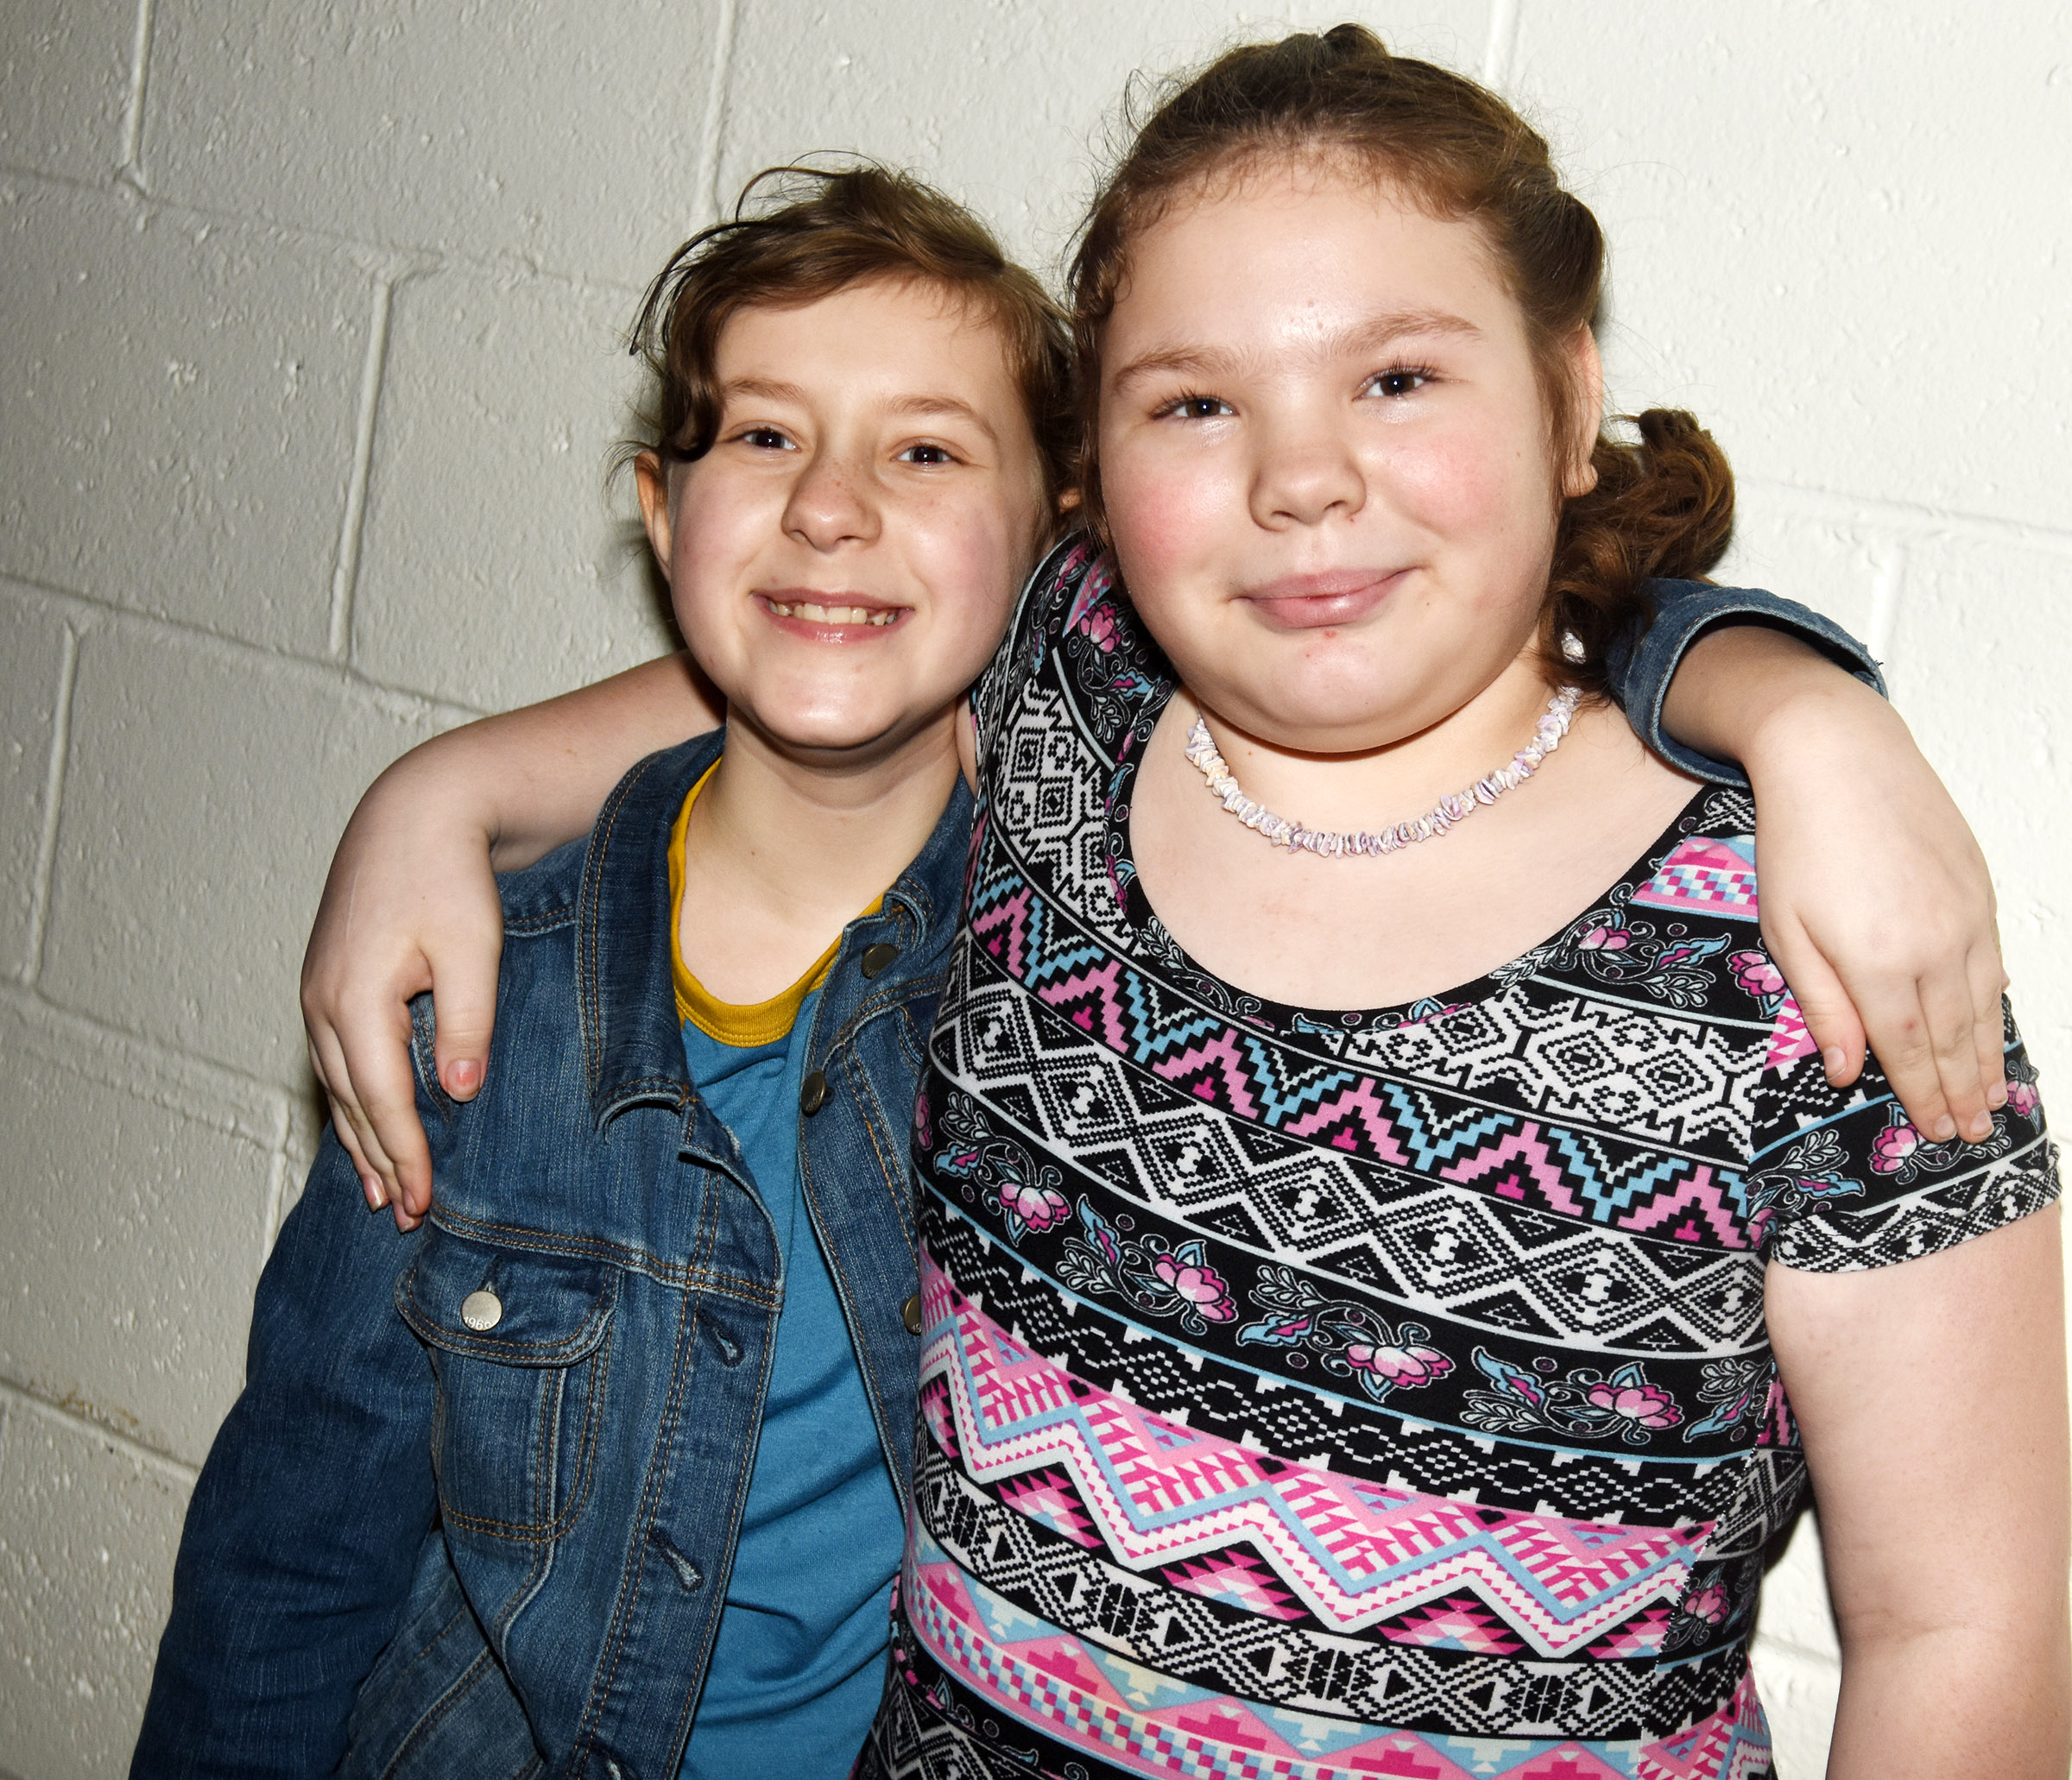 CES fifth-graders Bryanna Fitzgerald, at left, and Averi Perkins smile for a photo together at the dance.